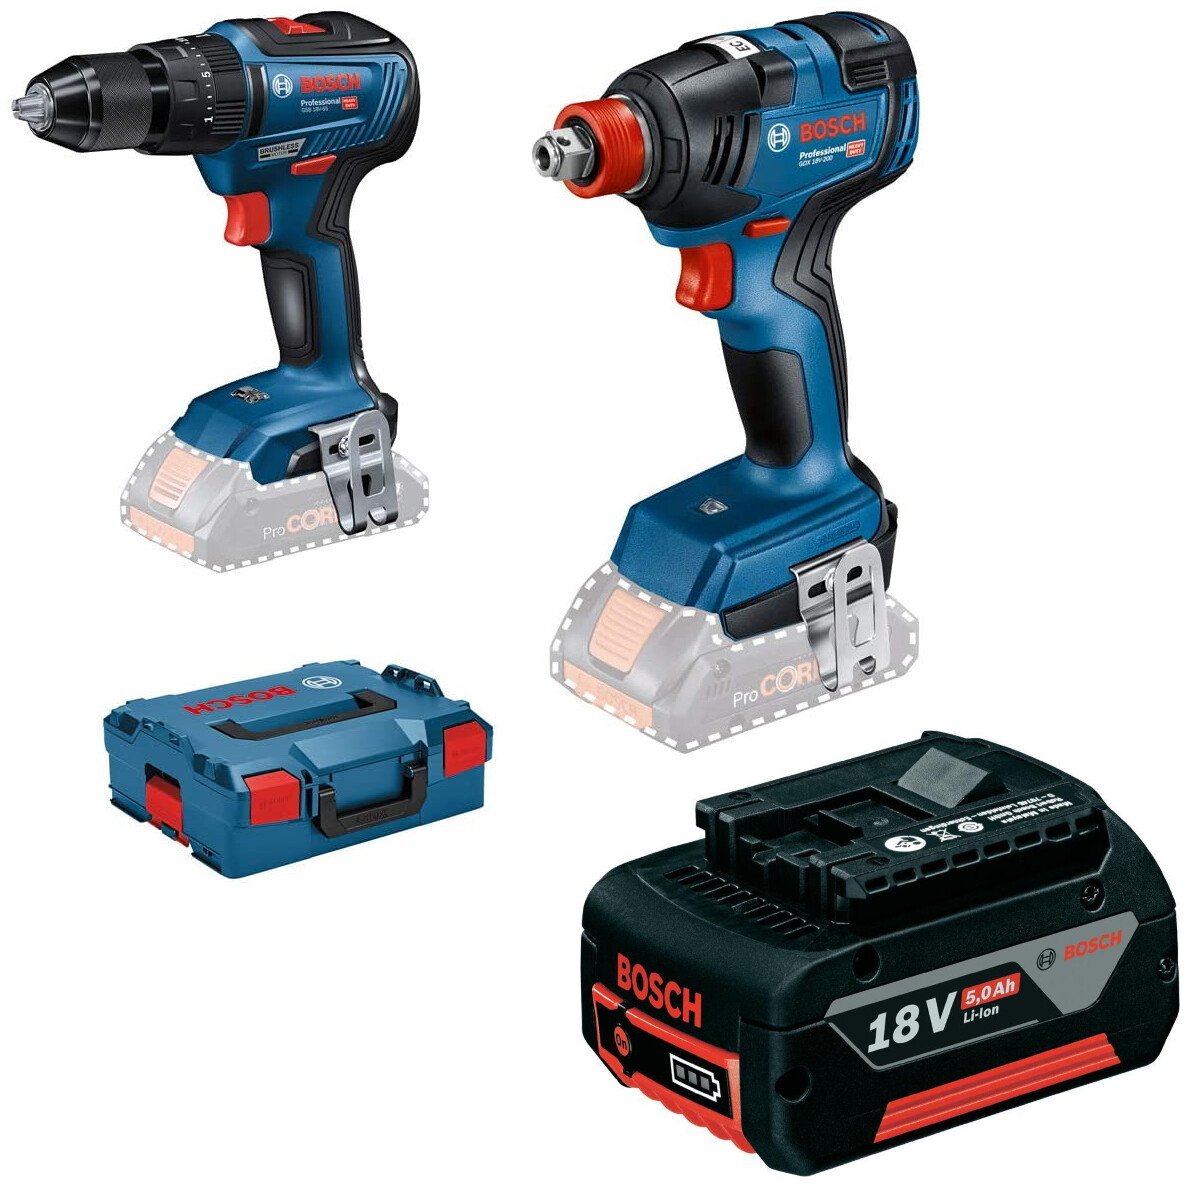 Bosch GSB 18 V - 55 + GDX 18 V-200 18V Brushless Twin Pack in L-Boxx with 18v 5.0Ah Battery (No Charger)